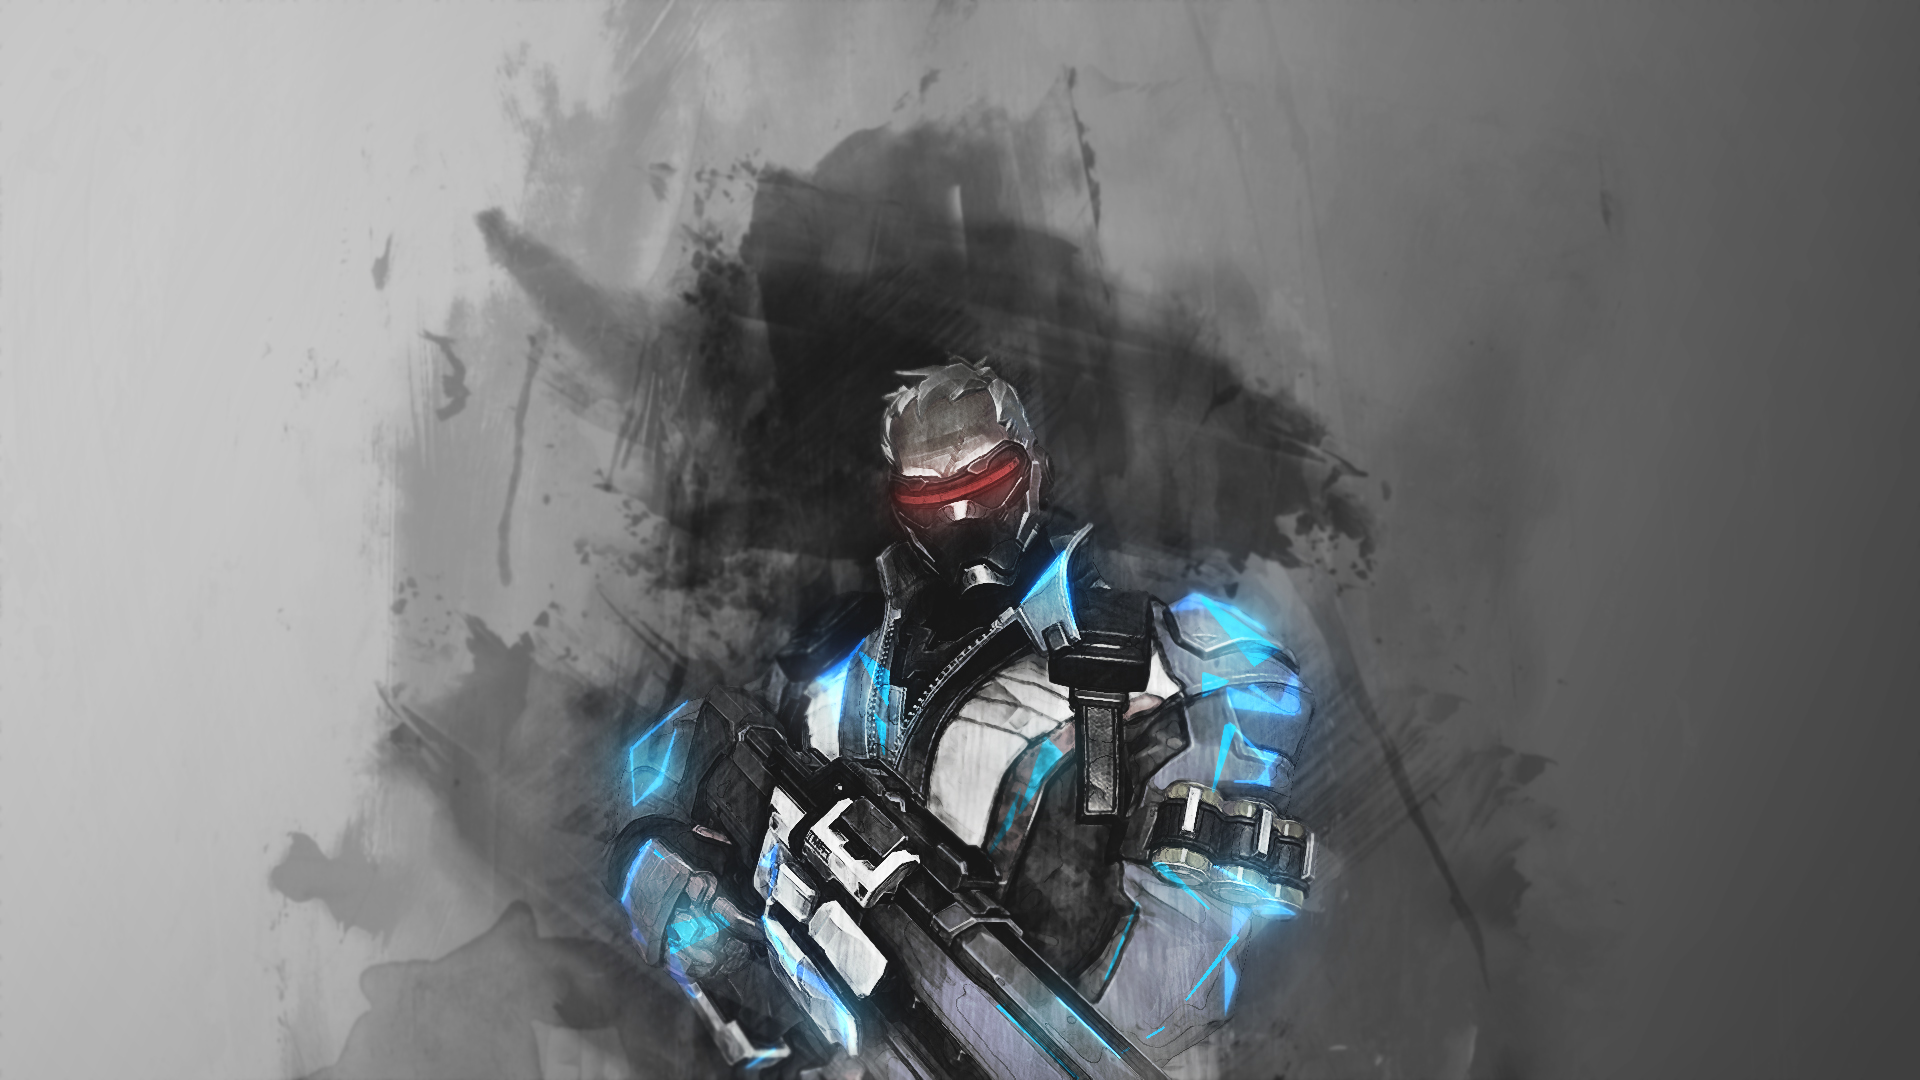 soldier 76 wallpaper - photo #6